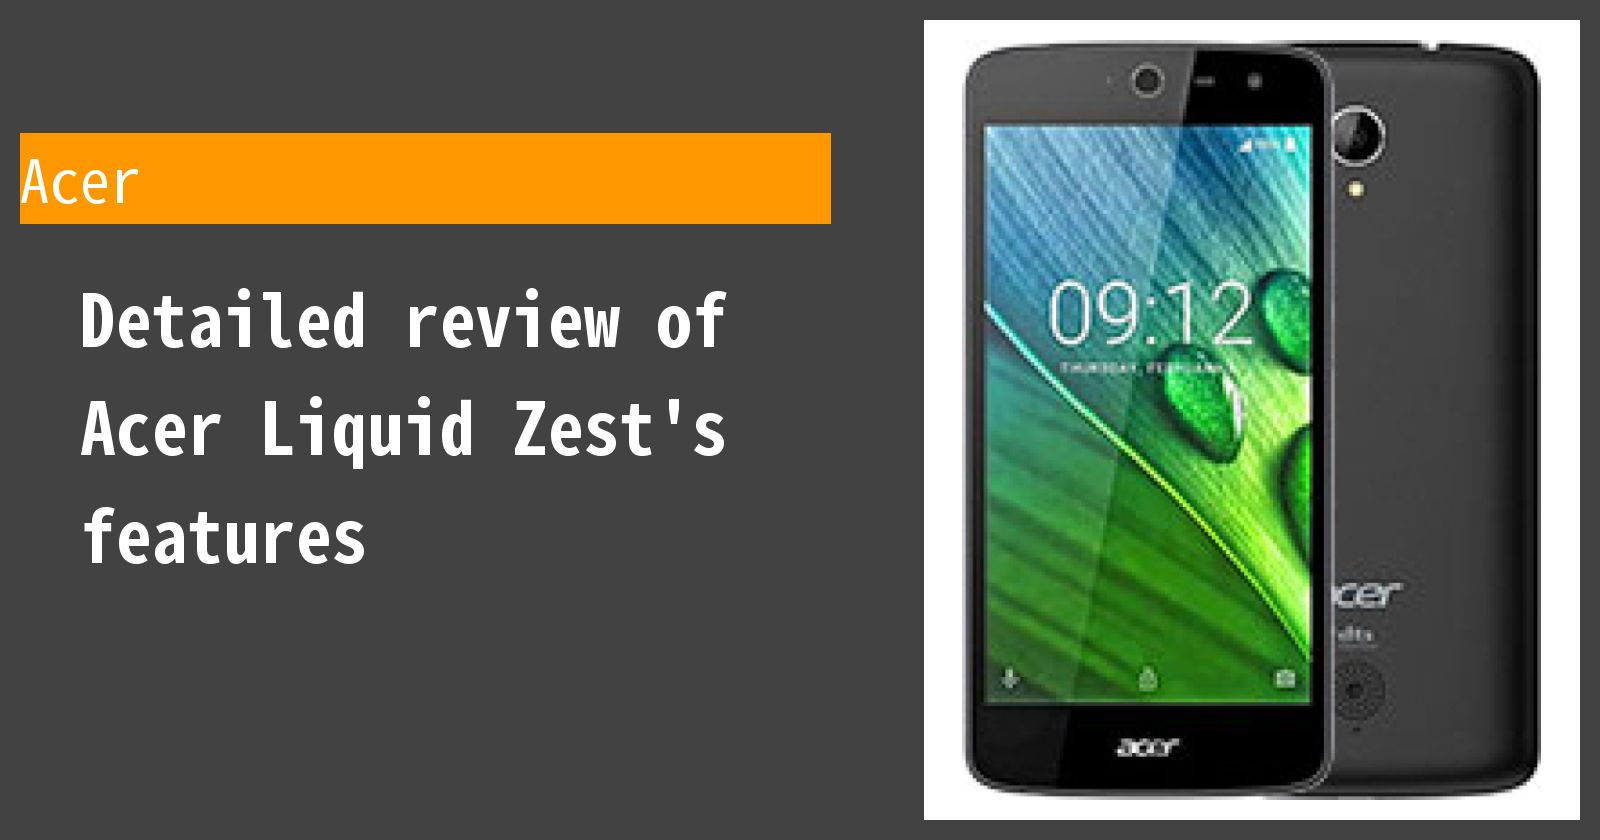 Detailed review of Acer Liquid Zest's features